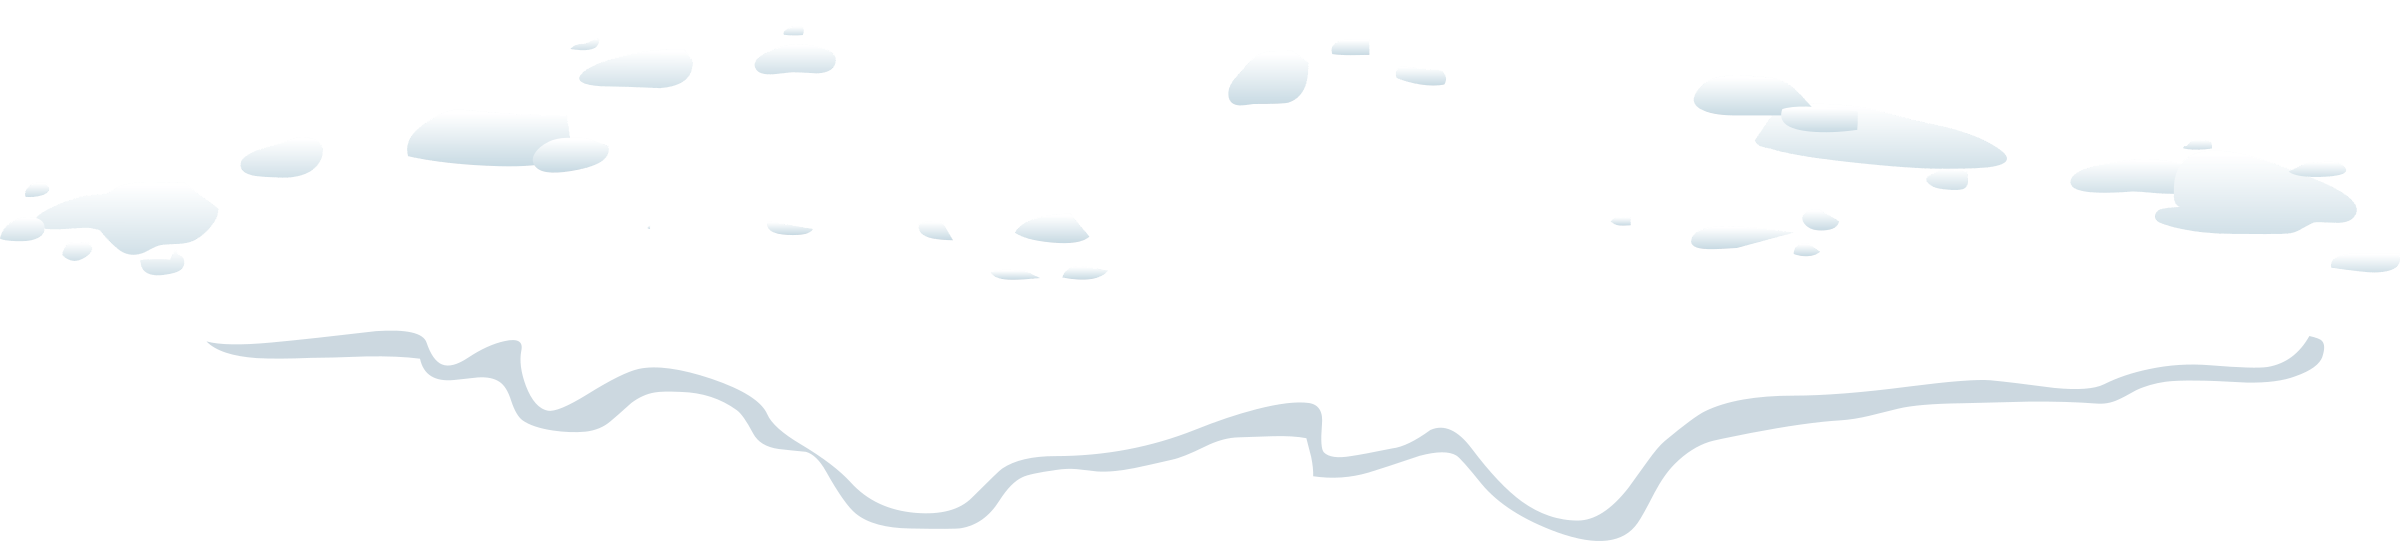 Free Snow Png Transparent, Download Free Clip Art, Free Clip Art on.